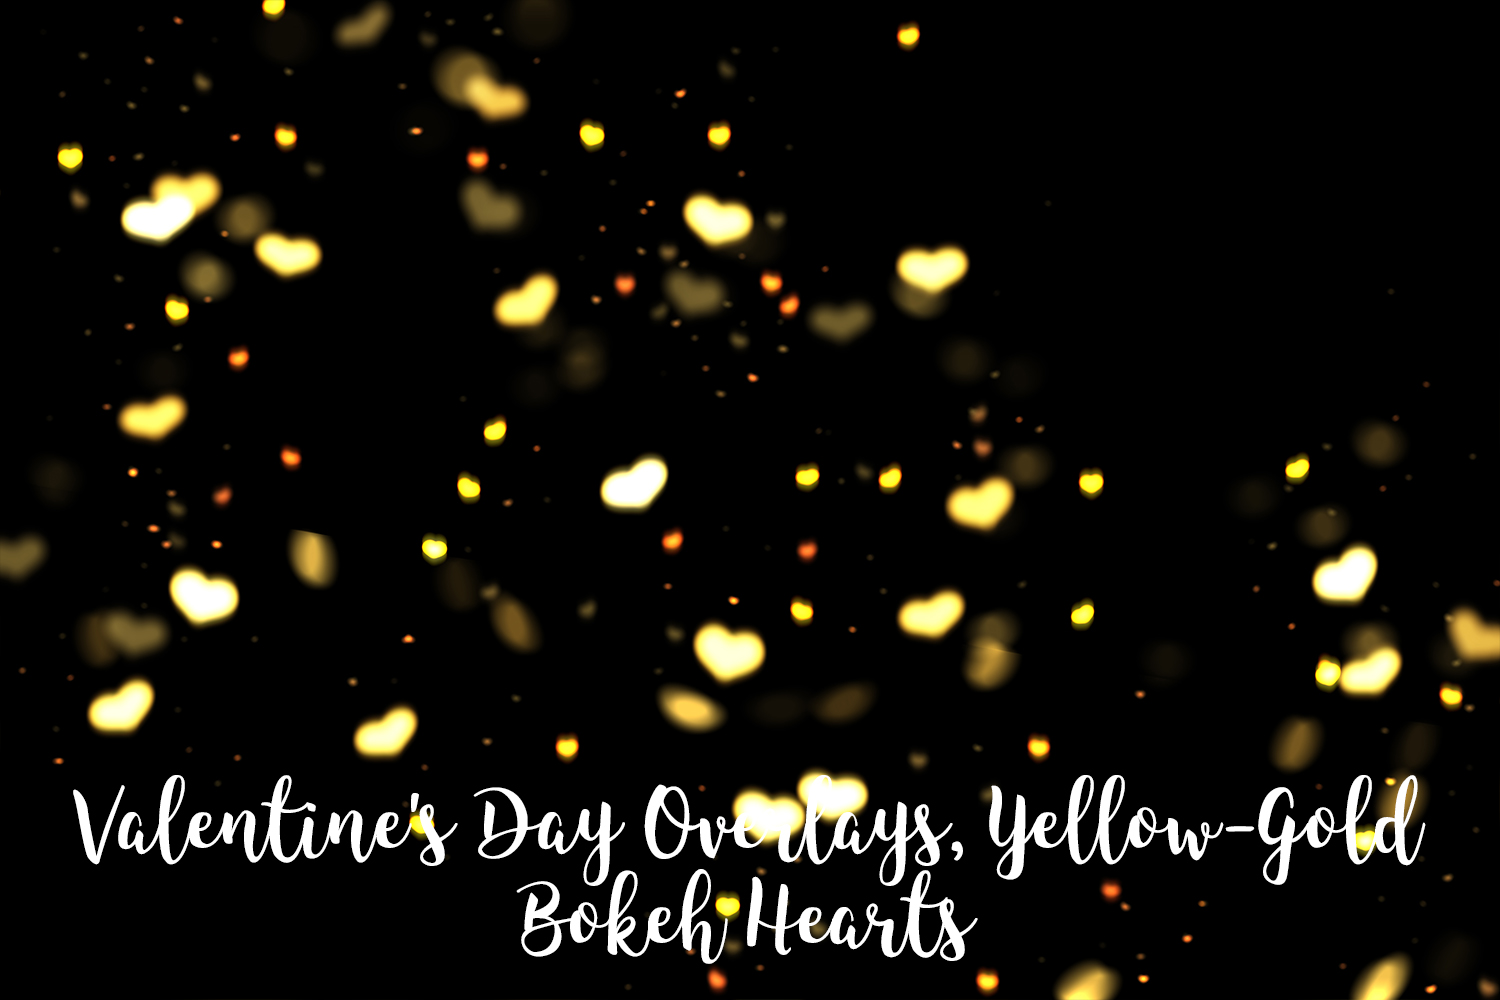 Valentine's Day Overlays, Yellow Gold Hearts Bokeh Overlays example image 7